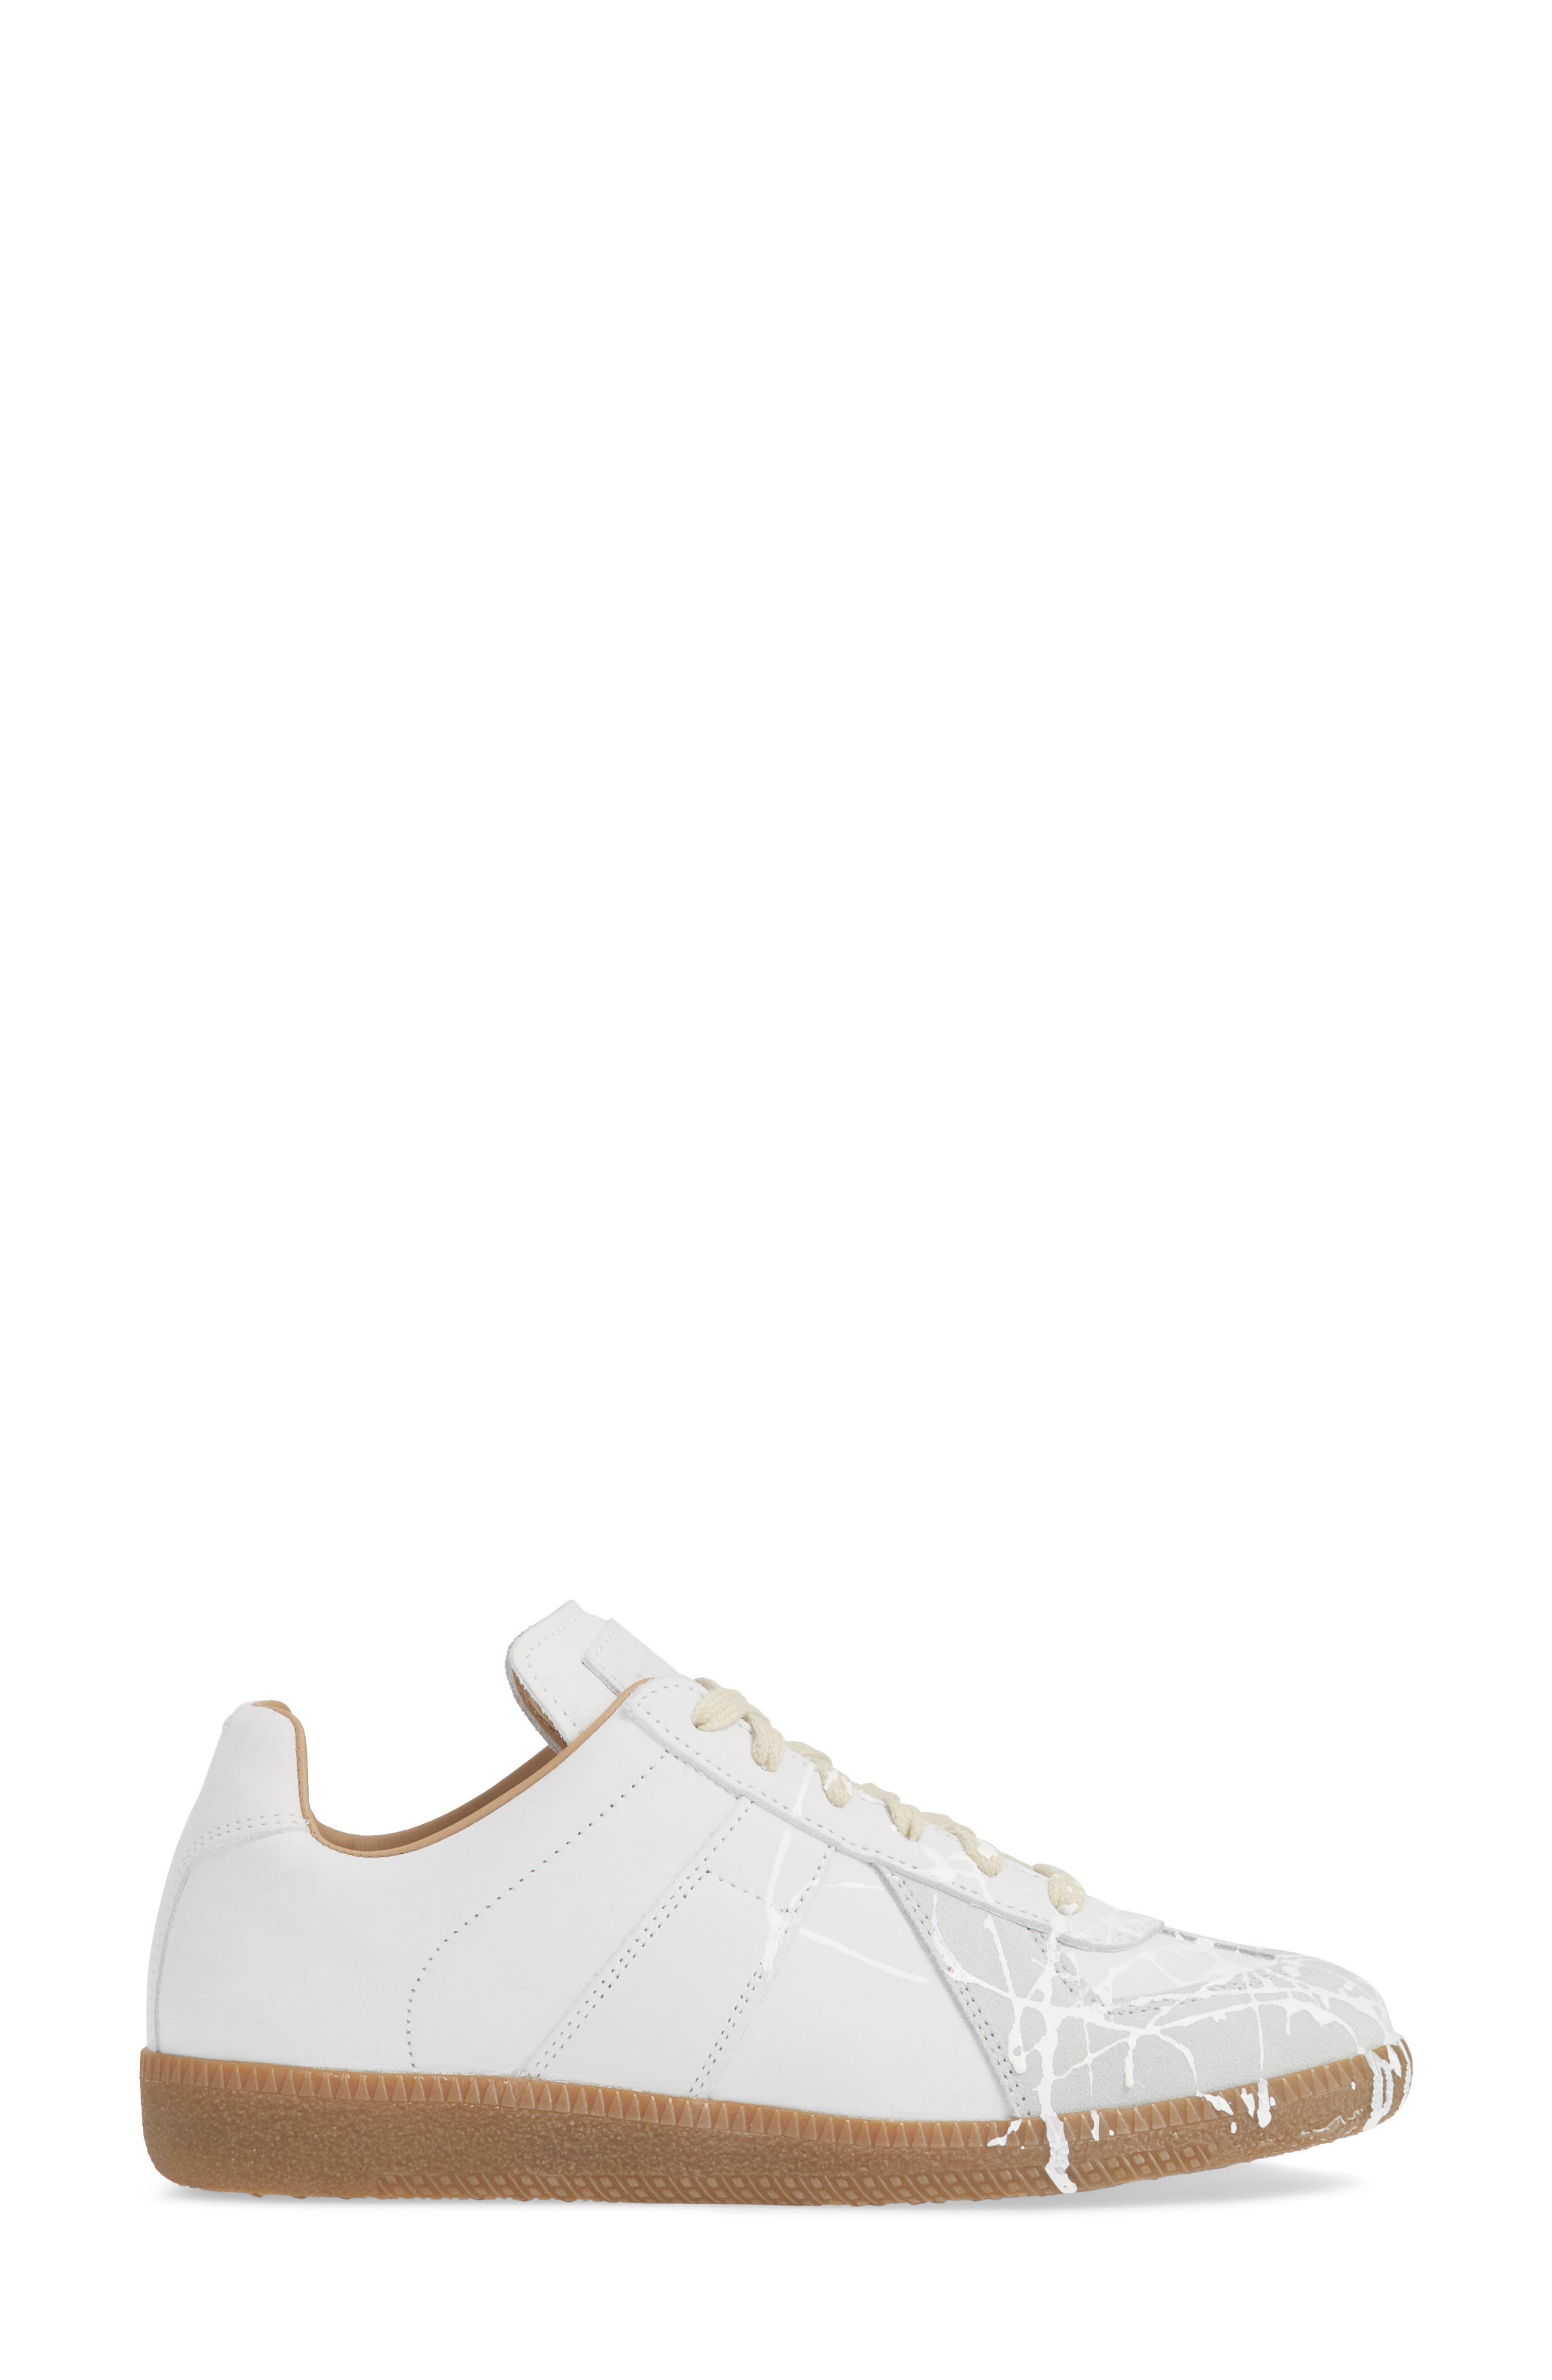 Replica Paint Splatter Sneaker,                             Alternate thumbnail 3, color,                             WHITE